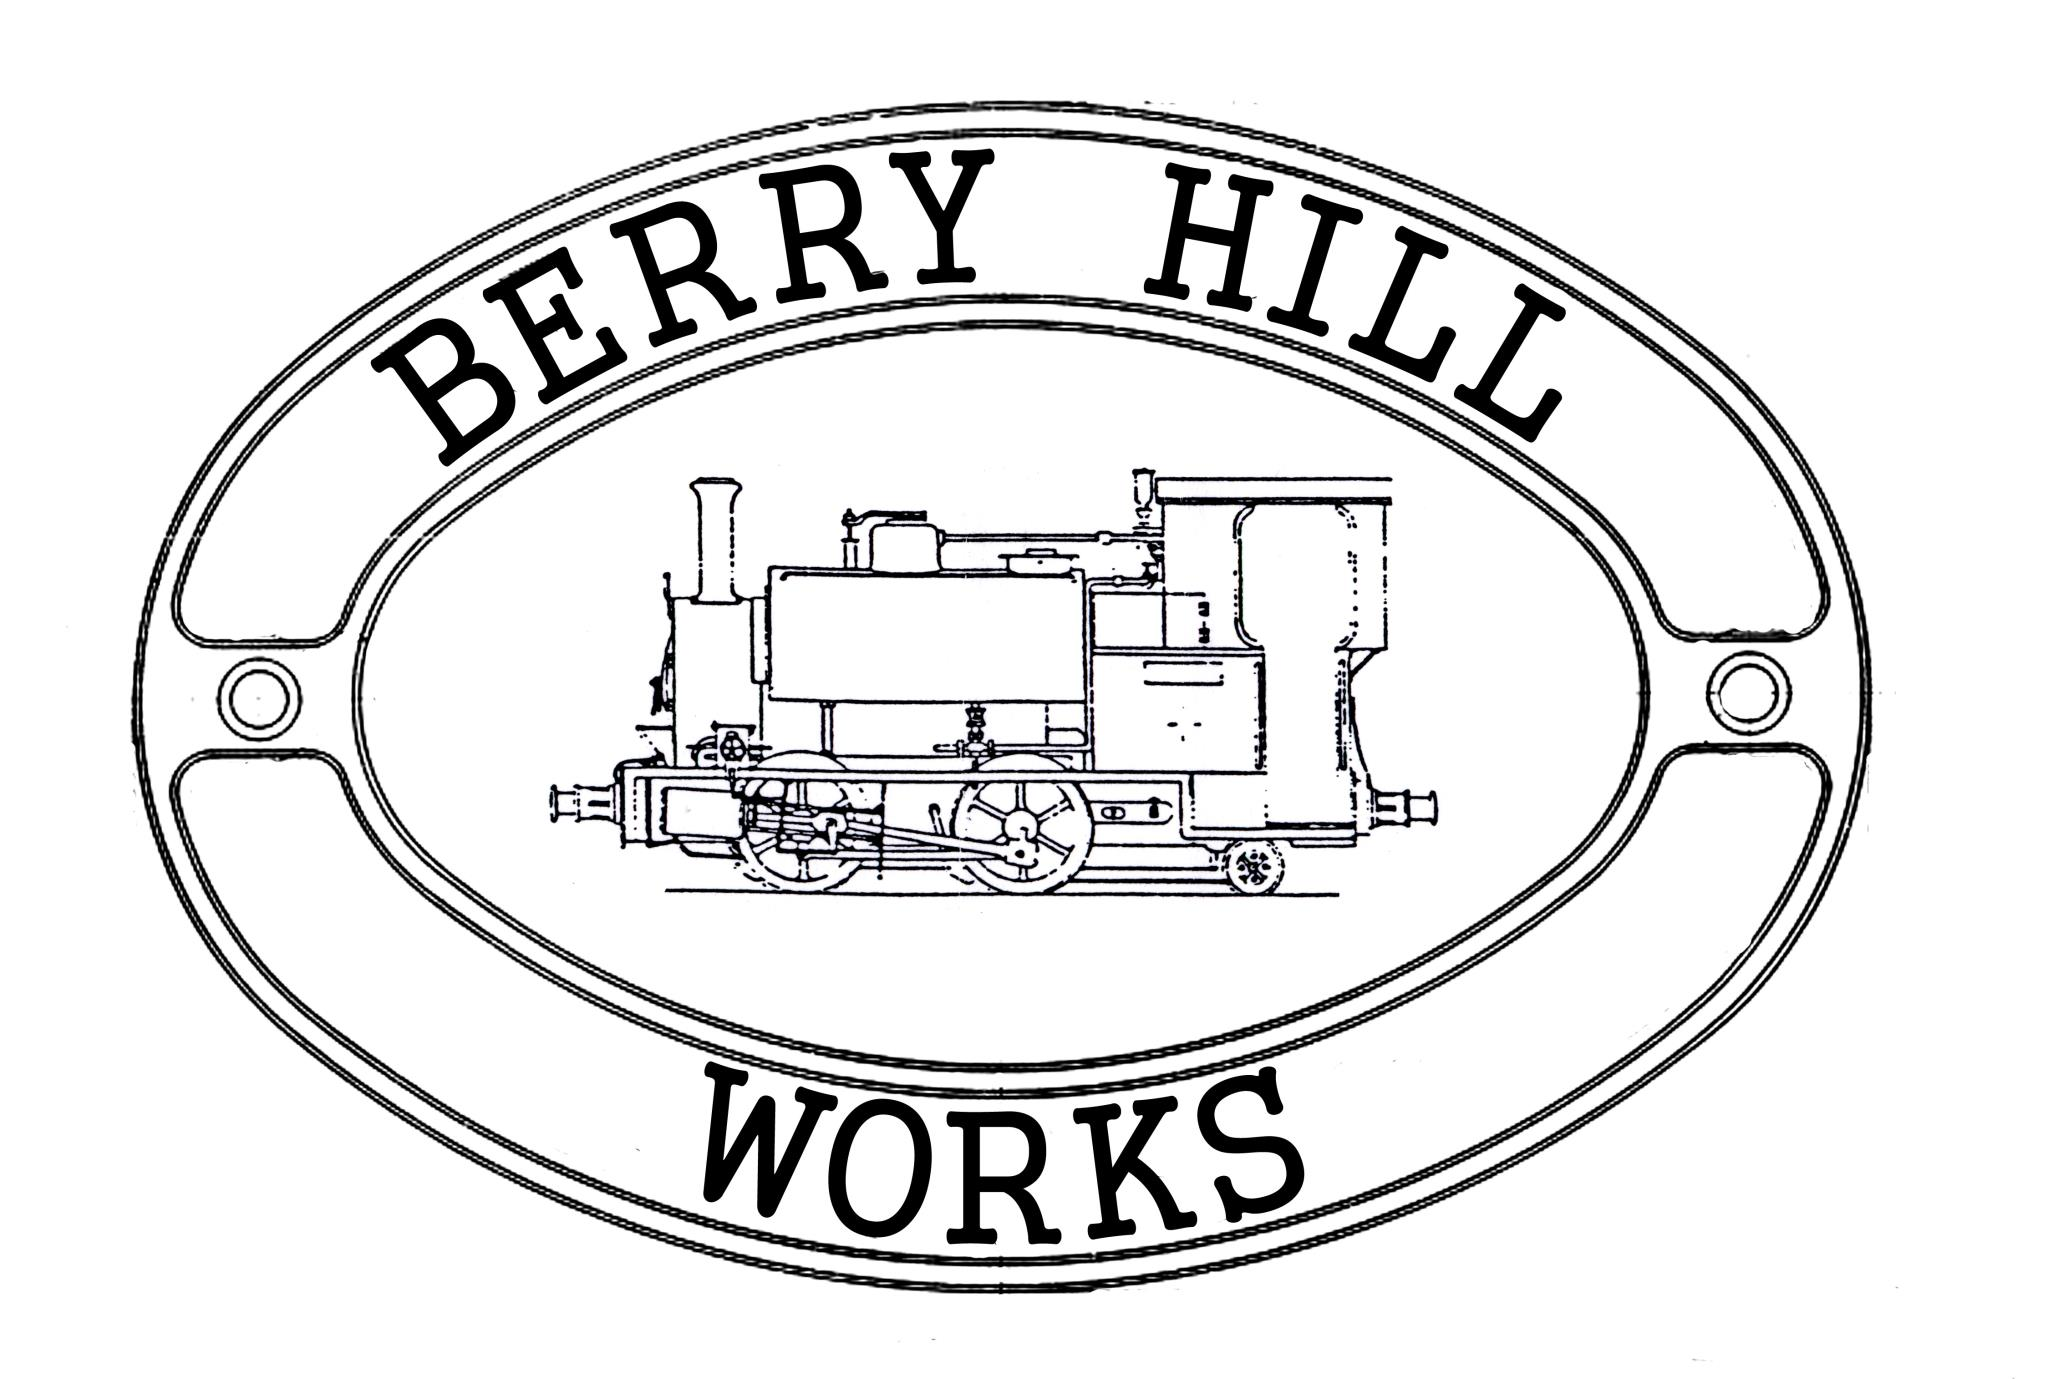 Berry Hill Works Logo